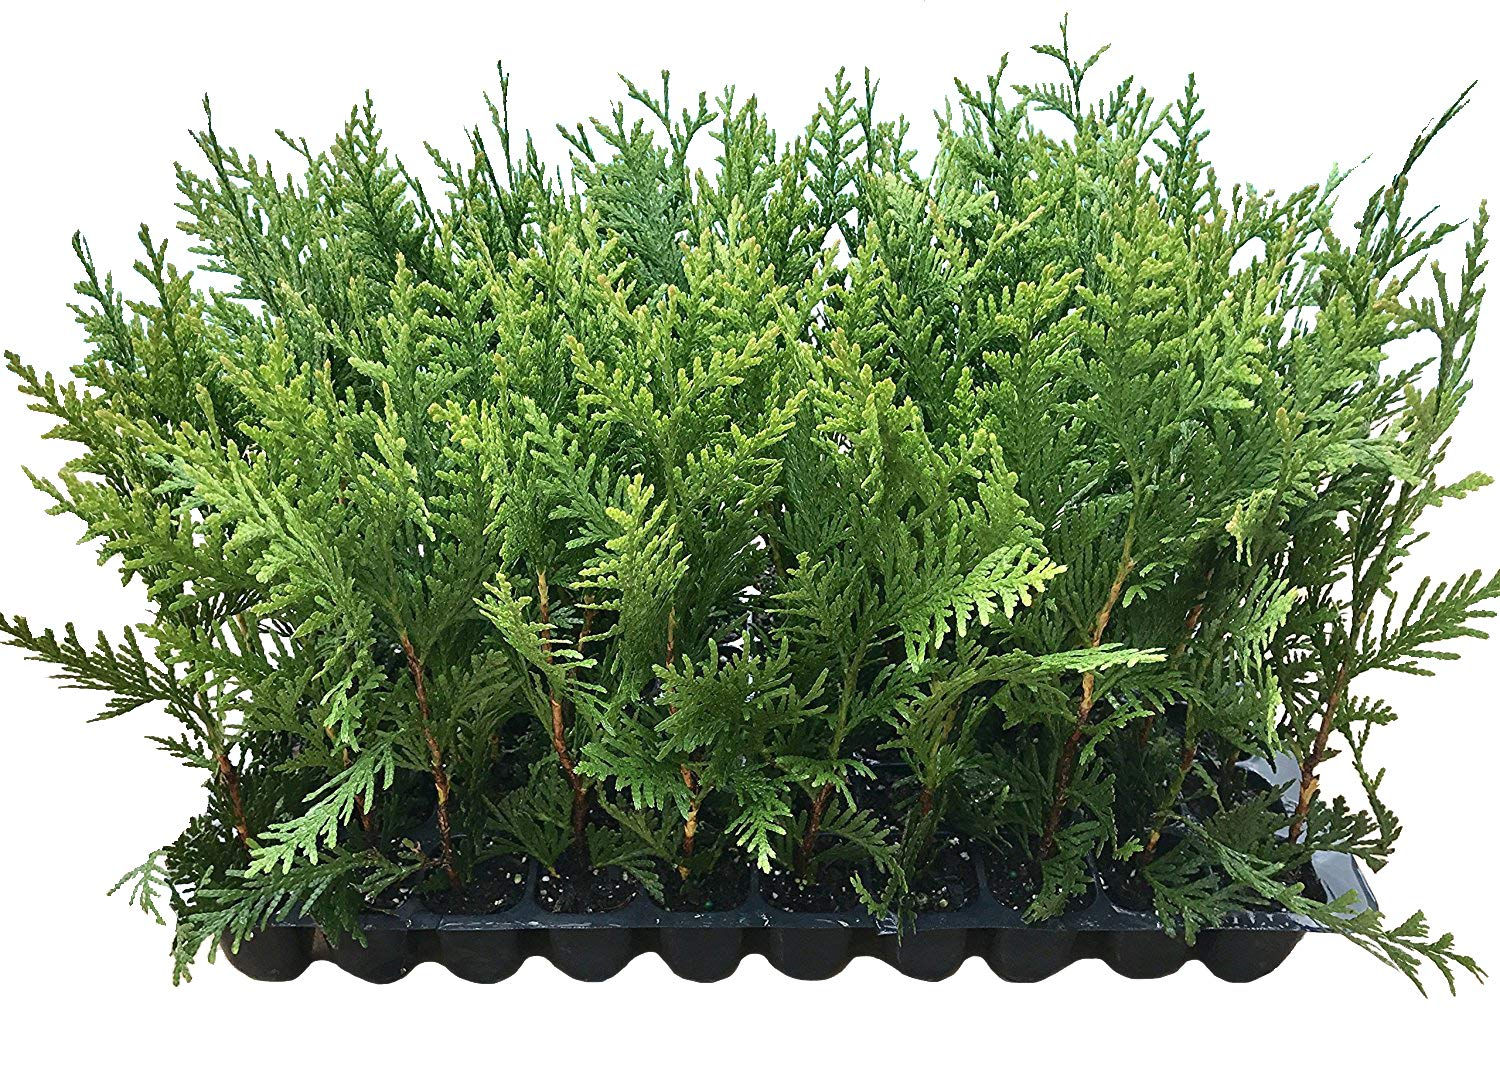 Thuja Green Giant Arborvitae - 10 Live Trees 2'' Pot Size - Evergreen Privacy Plants by Florida Foliage